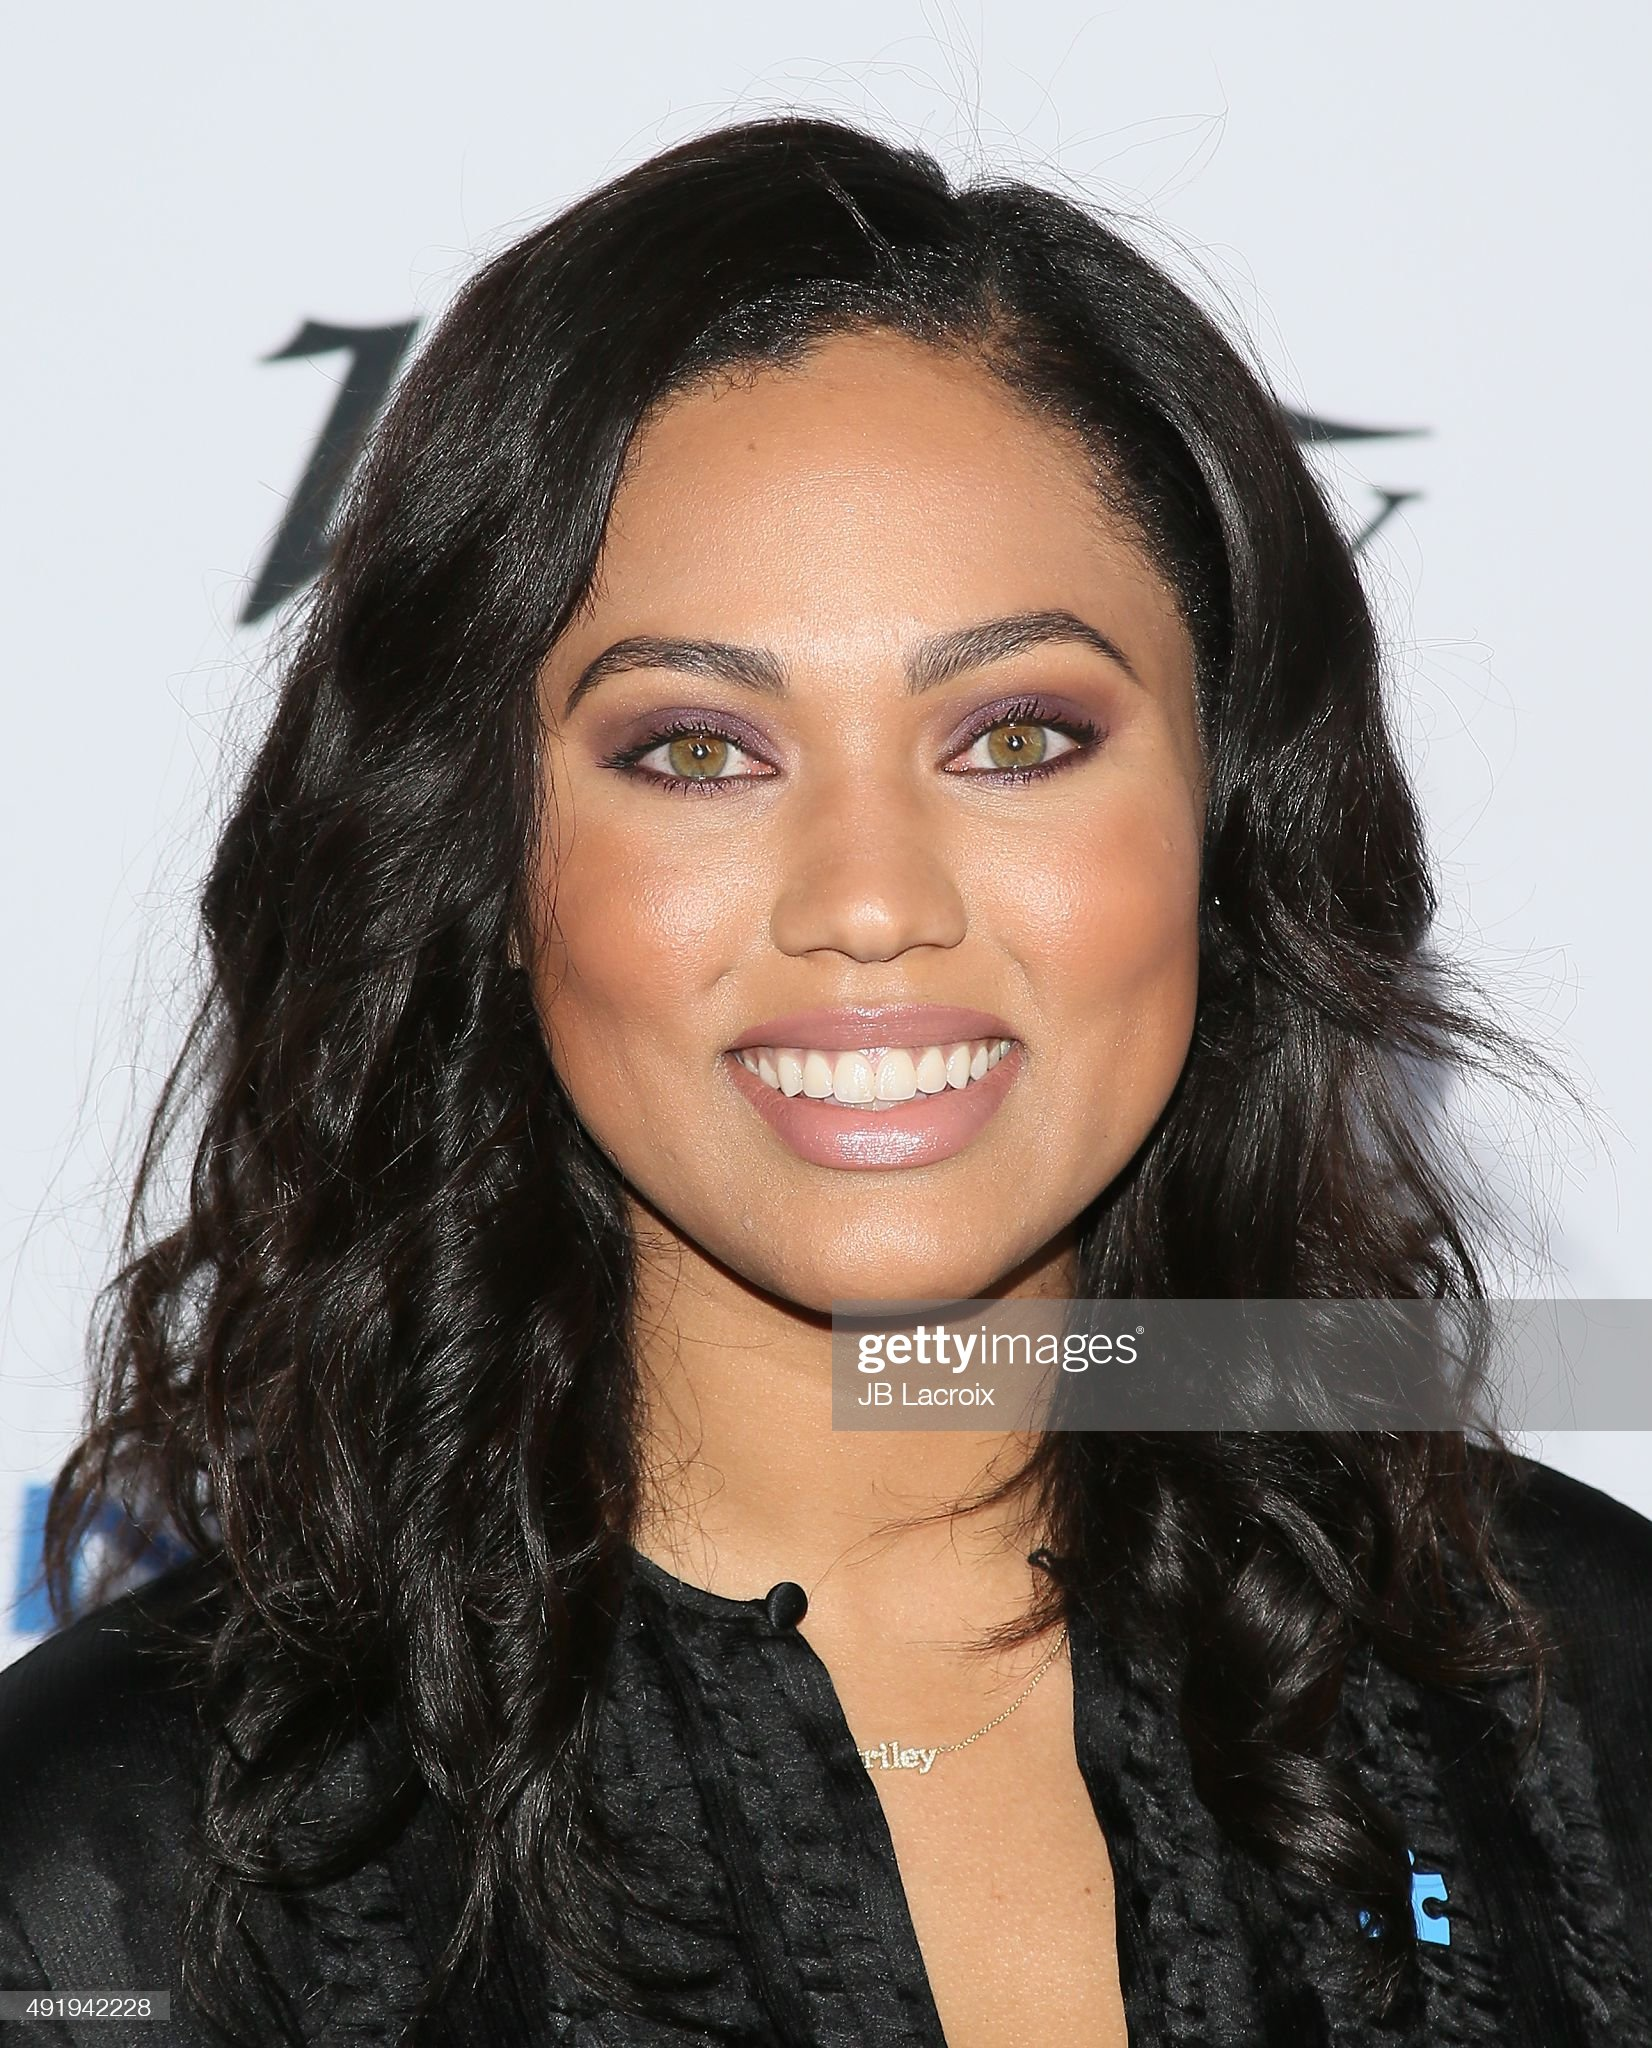 ¿Cuánto mide Ayesha Curry? - Real height Ayesha-curry-attends-the-autism-speaks-to-los-angeles-celebrity-chef-picture-id491942228?s=2048x2048